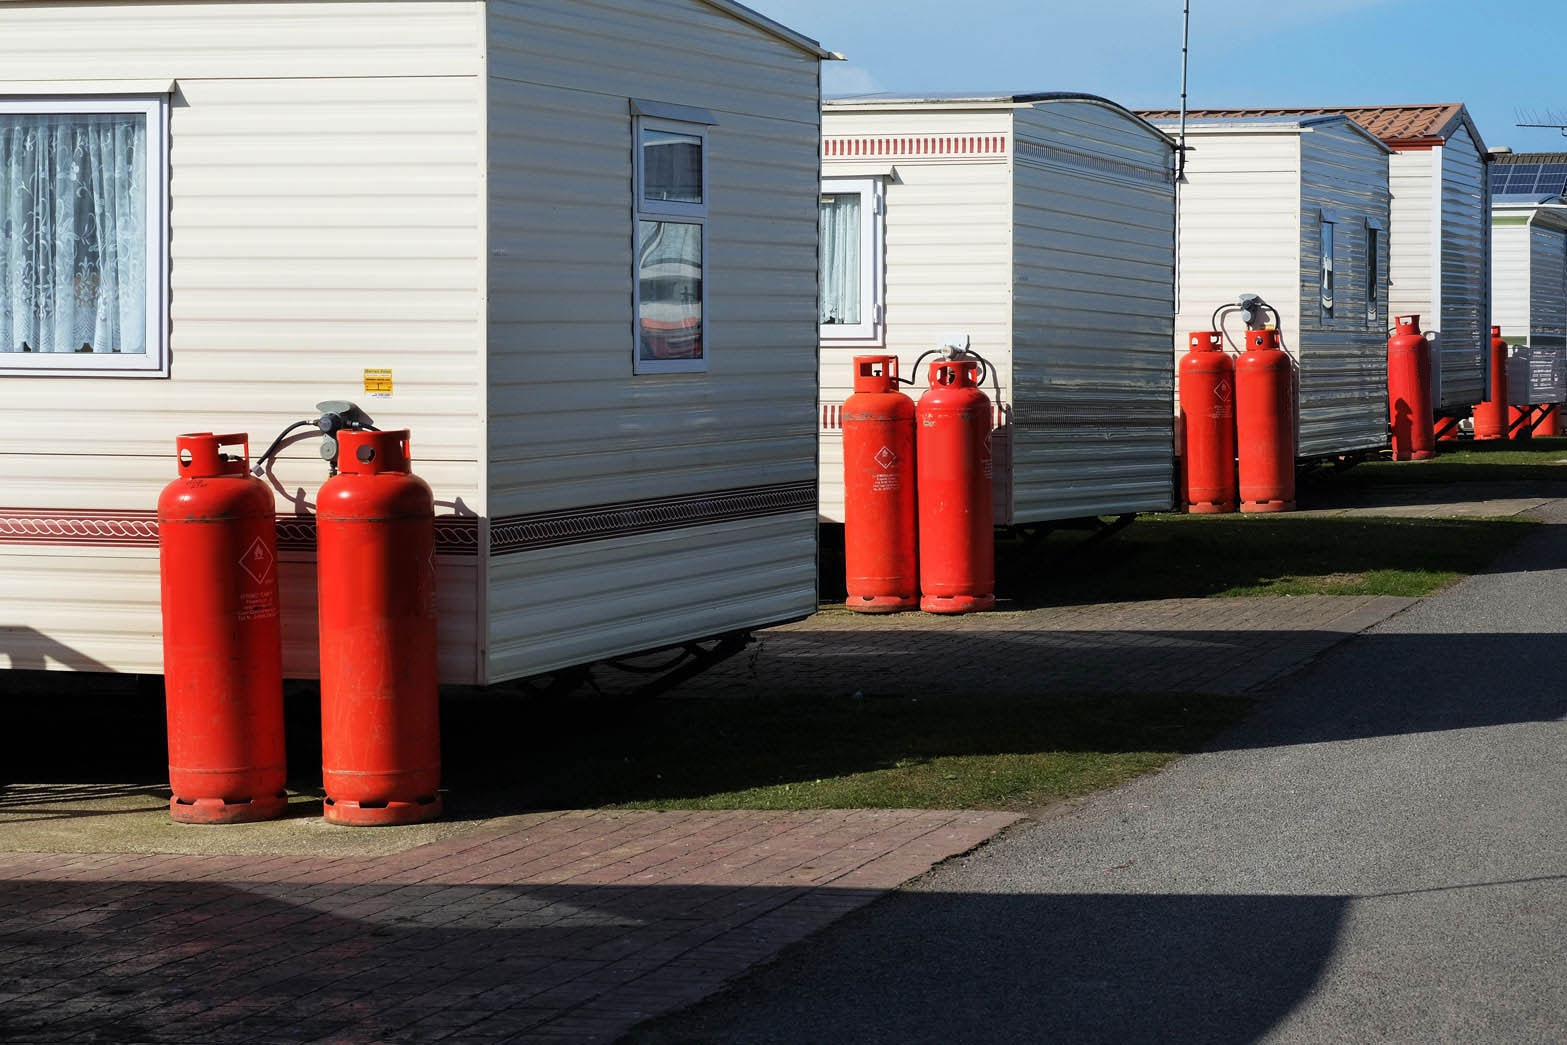 Gas Suppliers North East - We supply mobile homes and campsites Call us on 0191 5238008